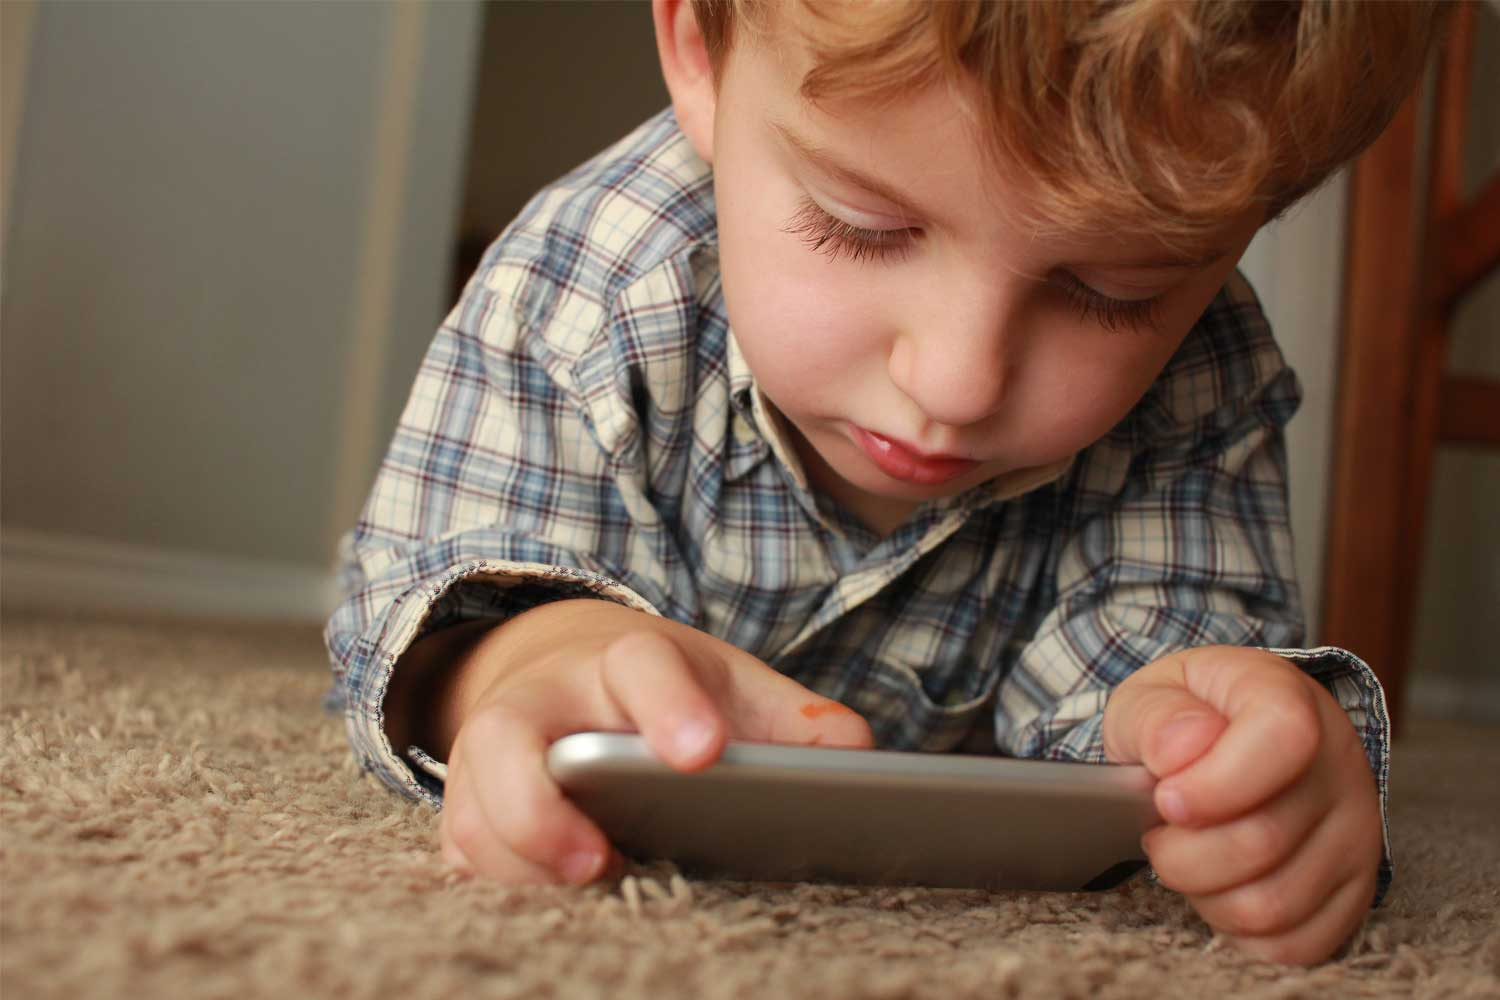 Child using apps